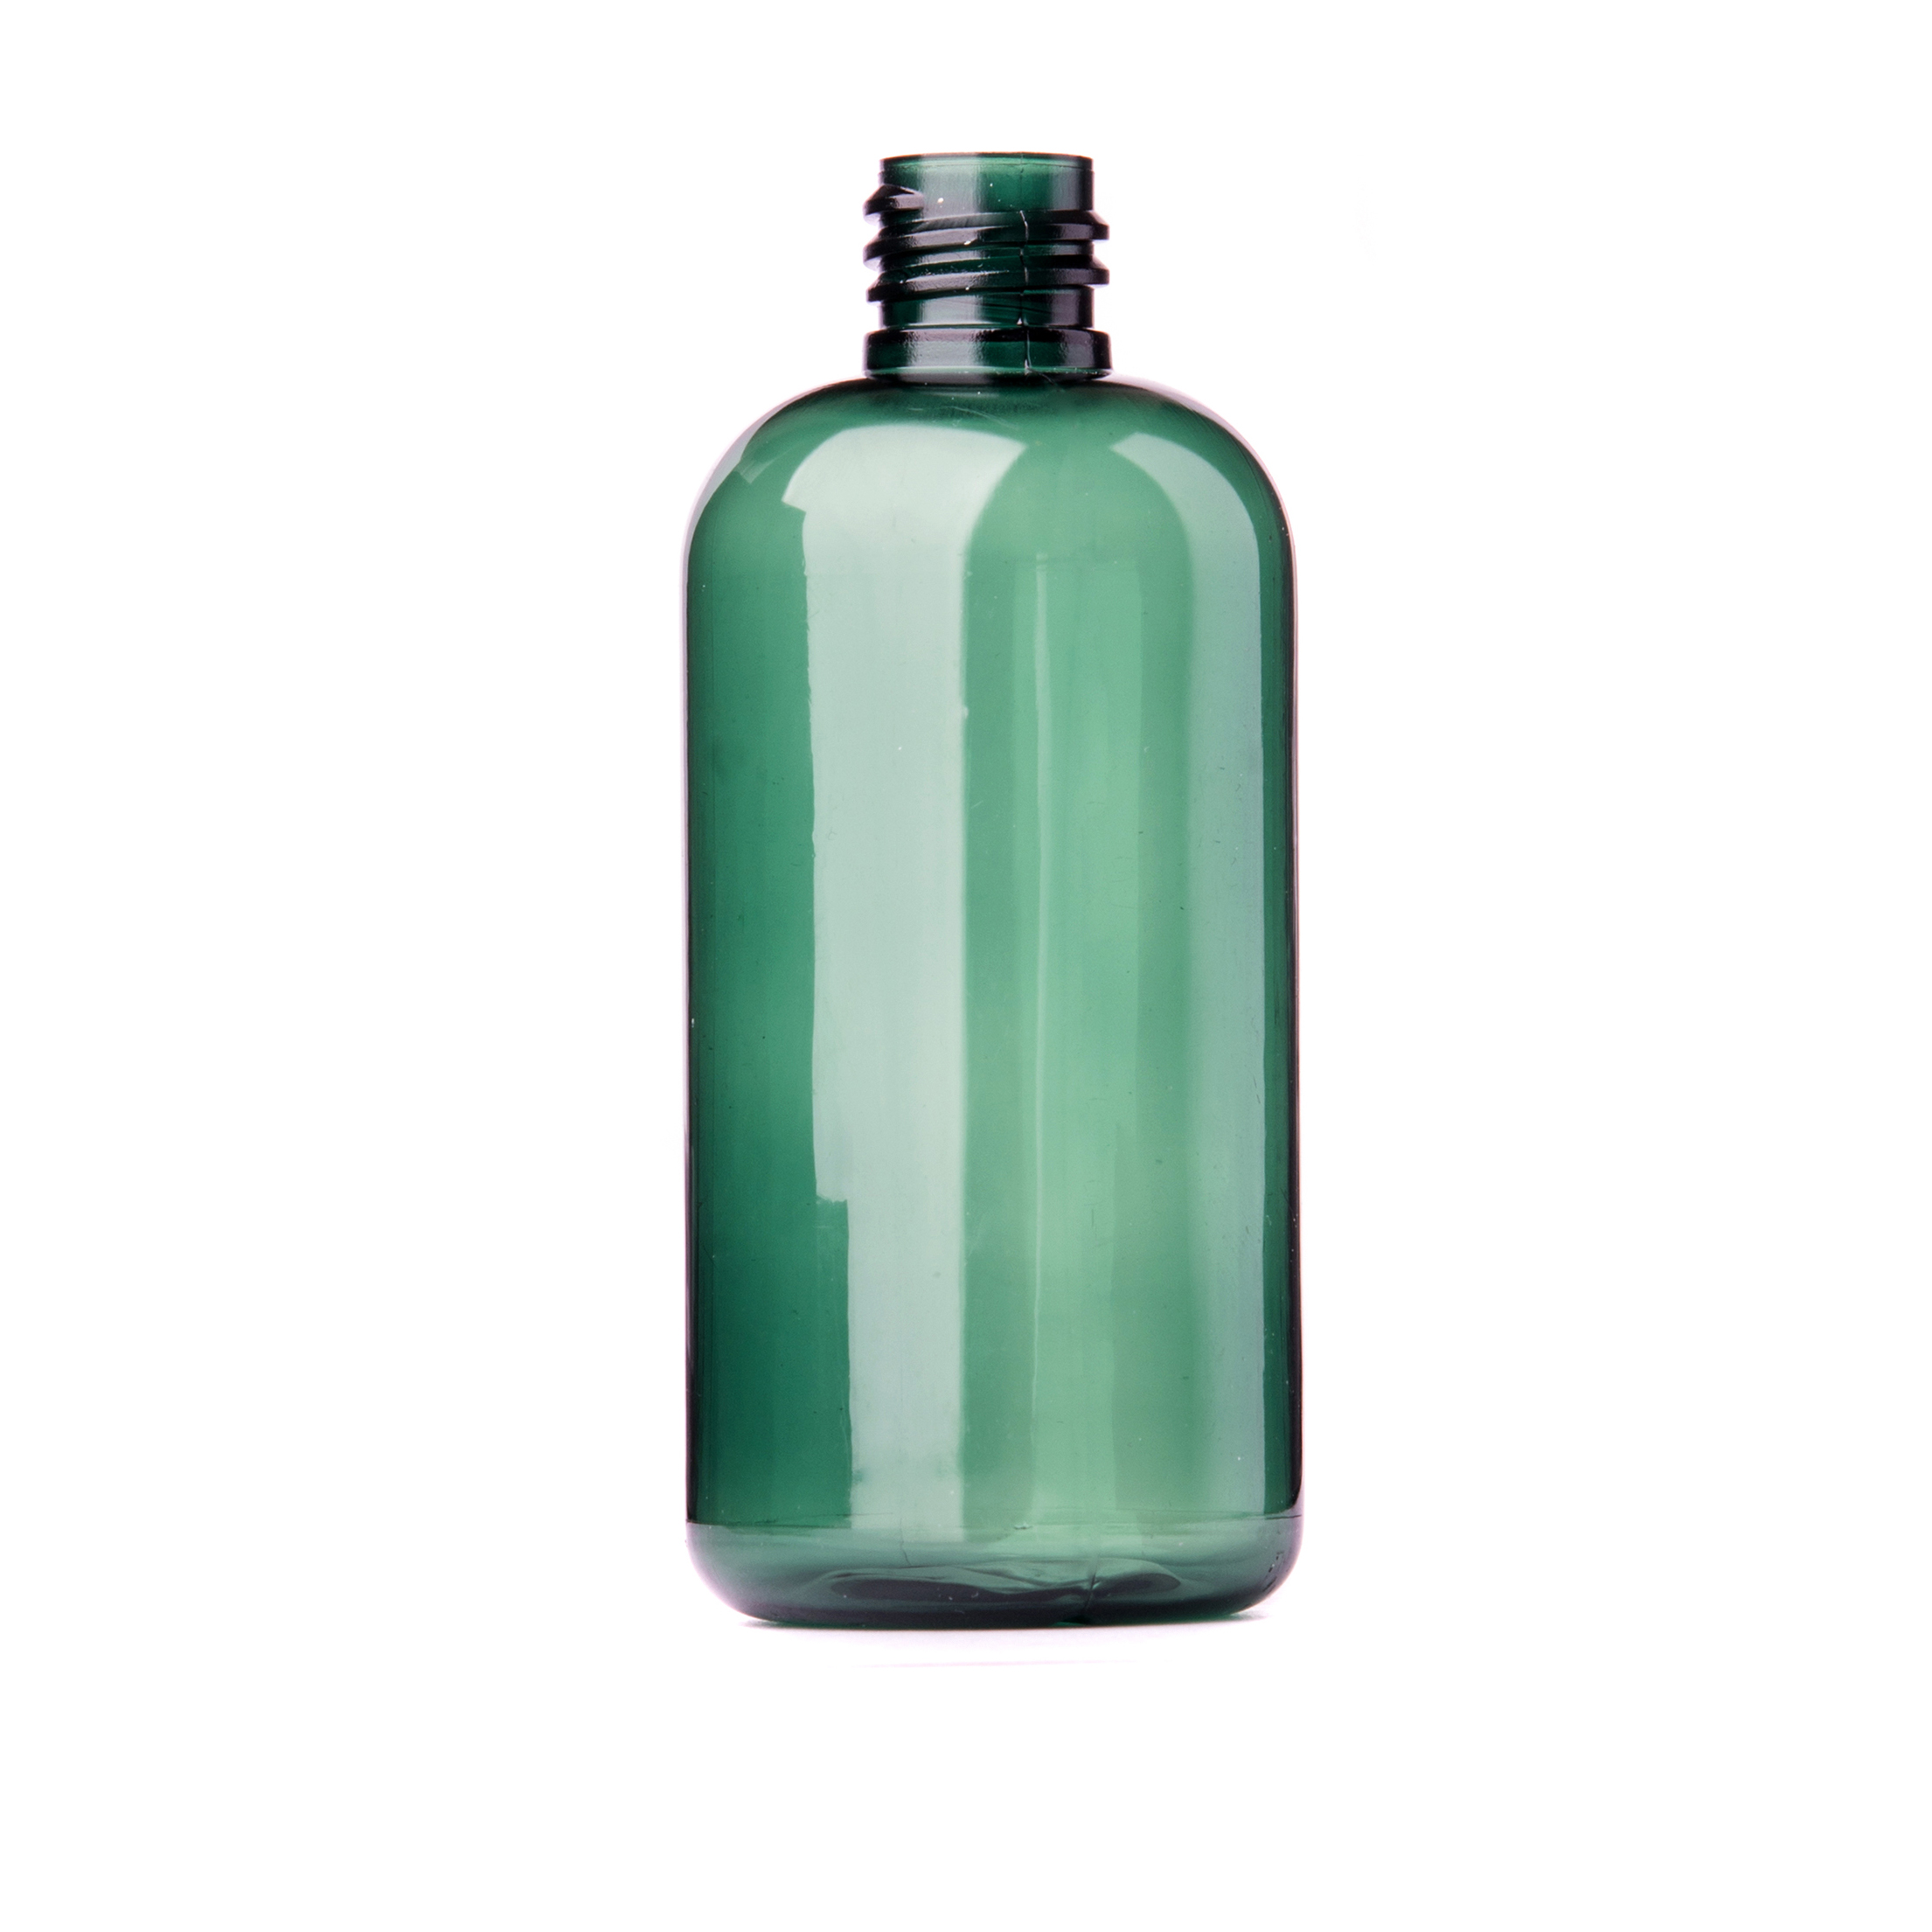 Green bottle photo